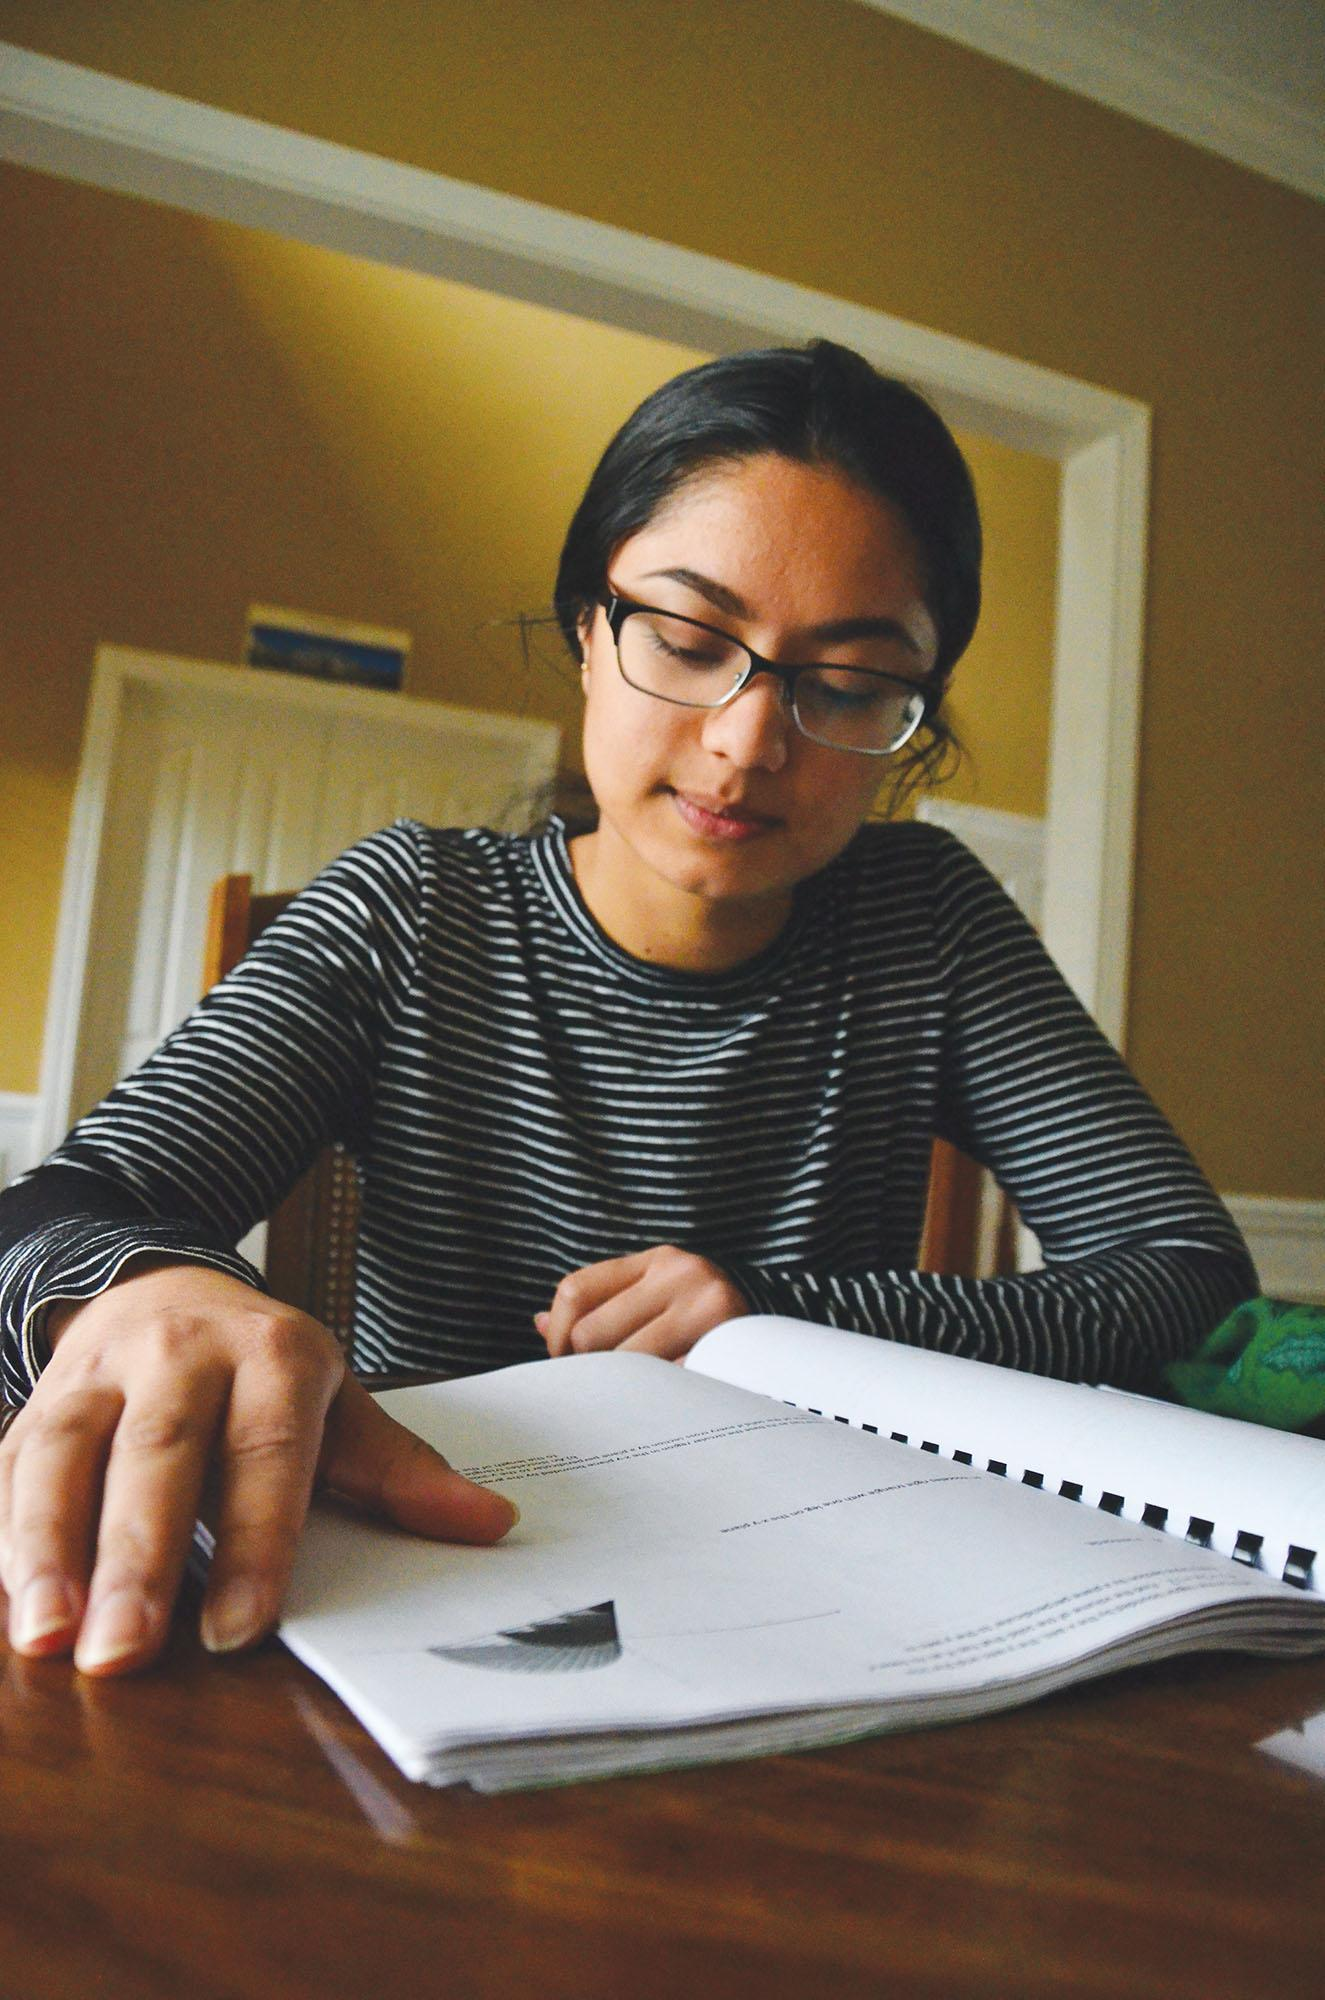 Sophomore Seema Dhungana reads her notes out loud to study for a test. Dhungana said reading the material and saying it at the same time helps her remember key points.